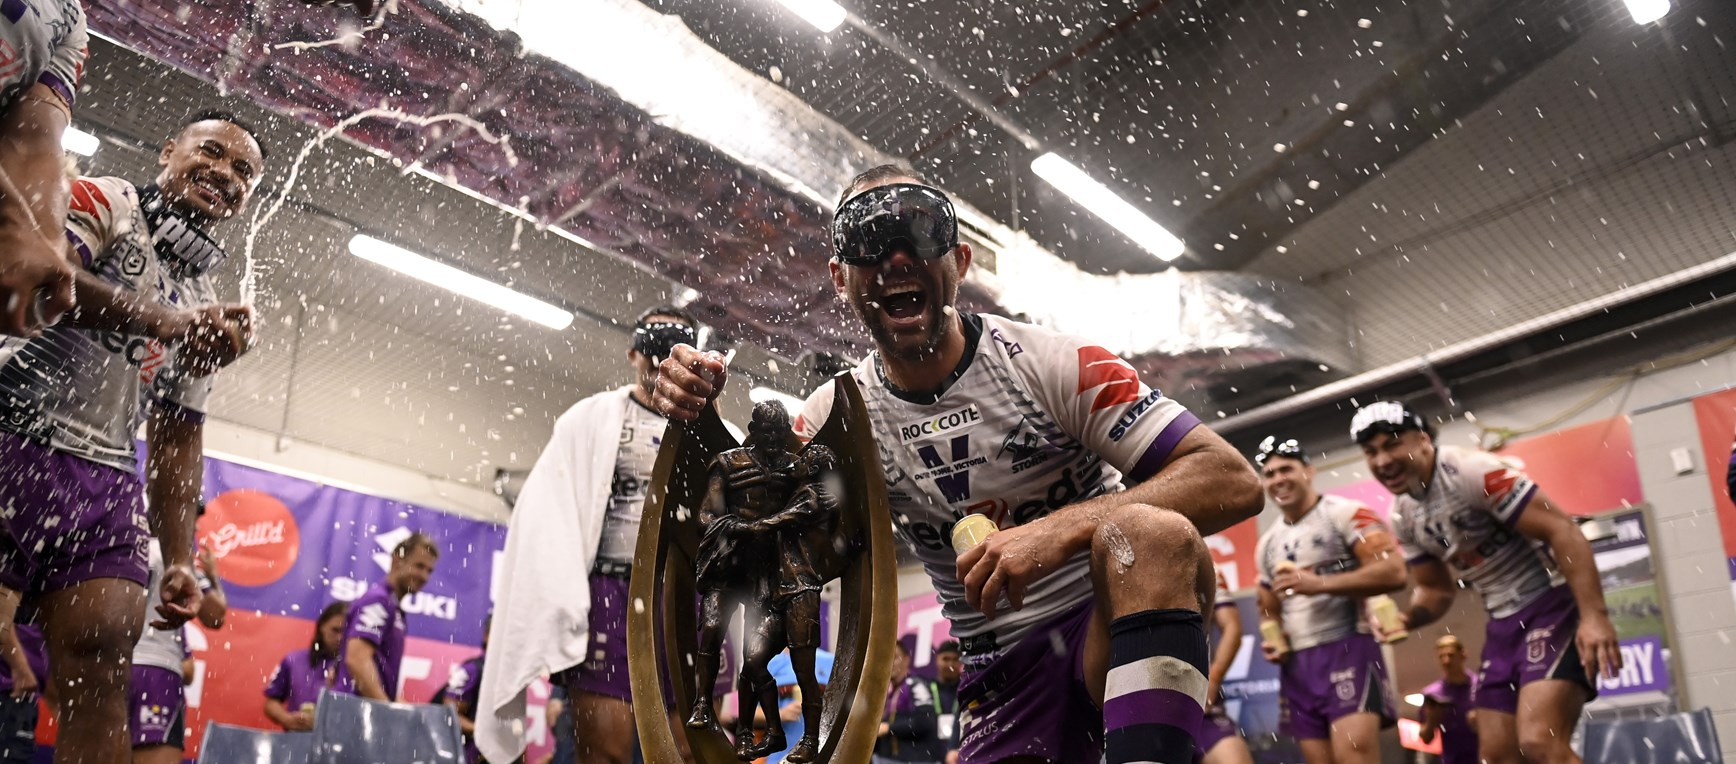 In pictures: NRL Grand Final